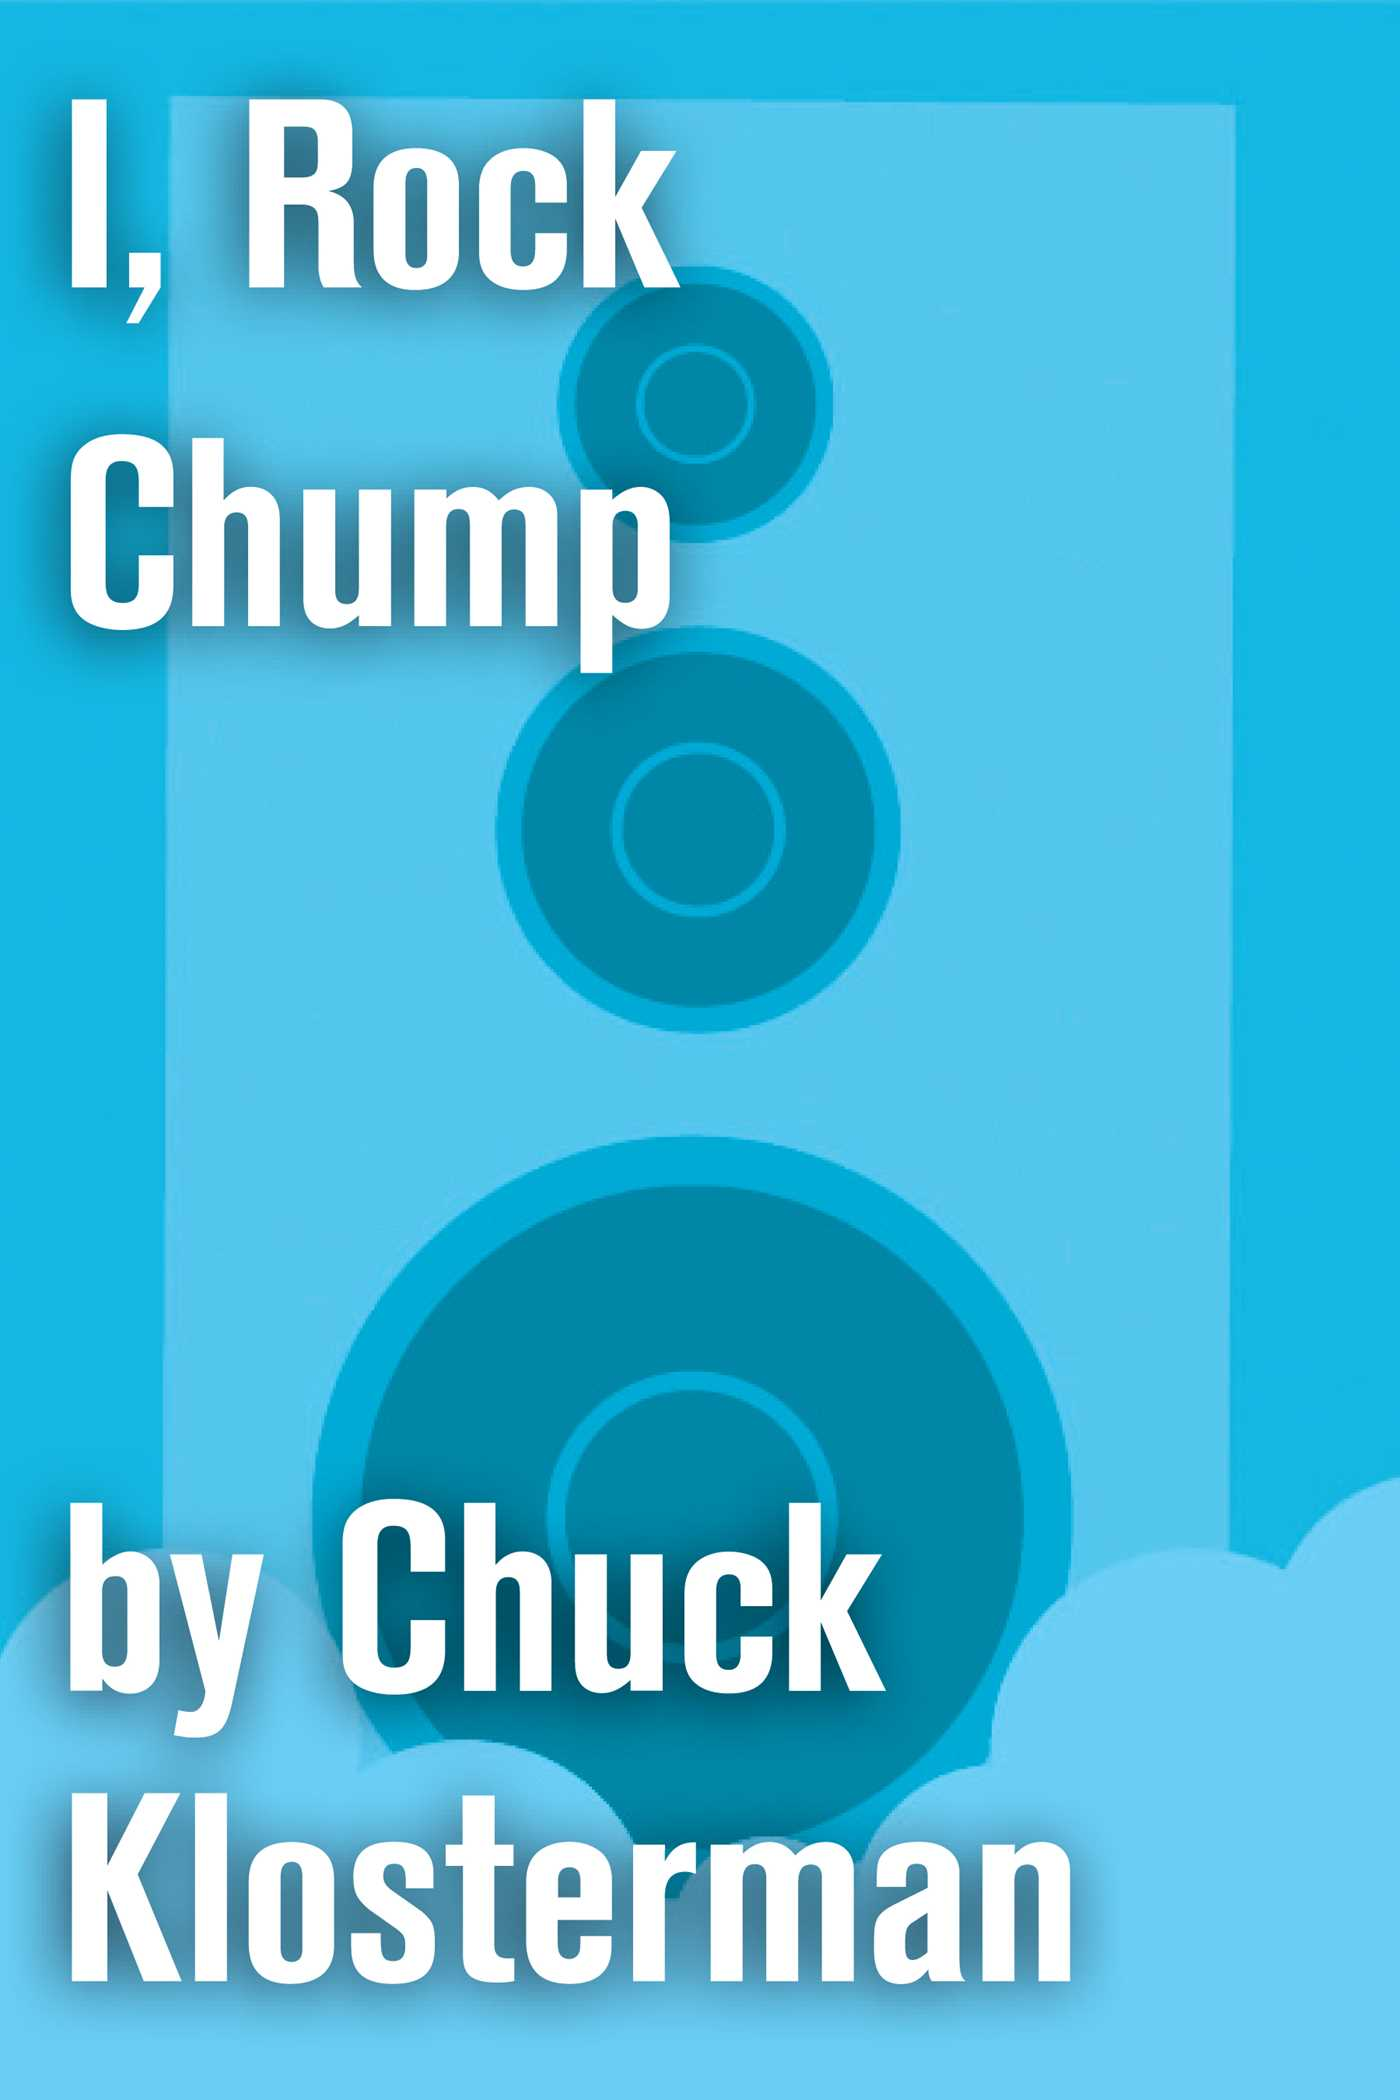 I rock chump 9781451624649 hr